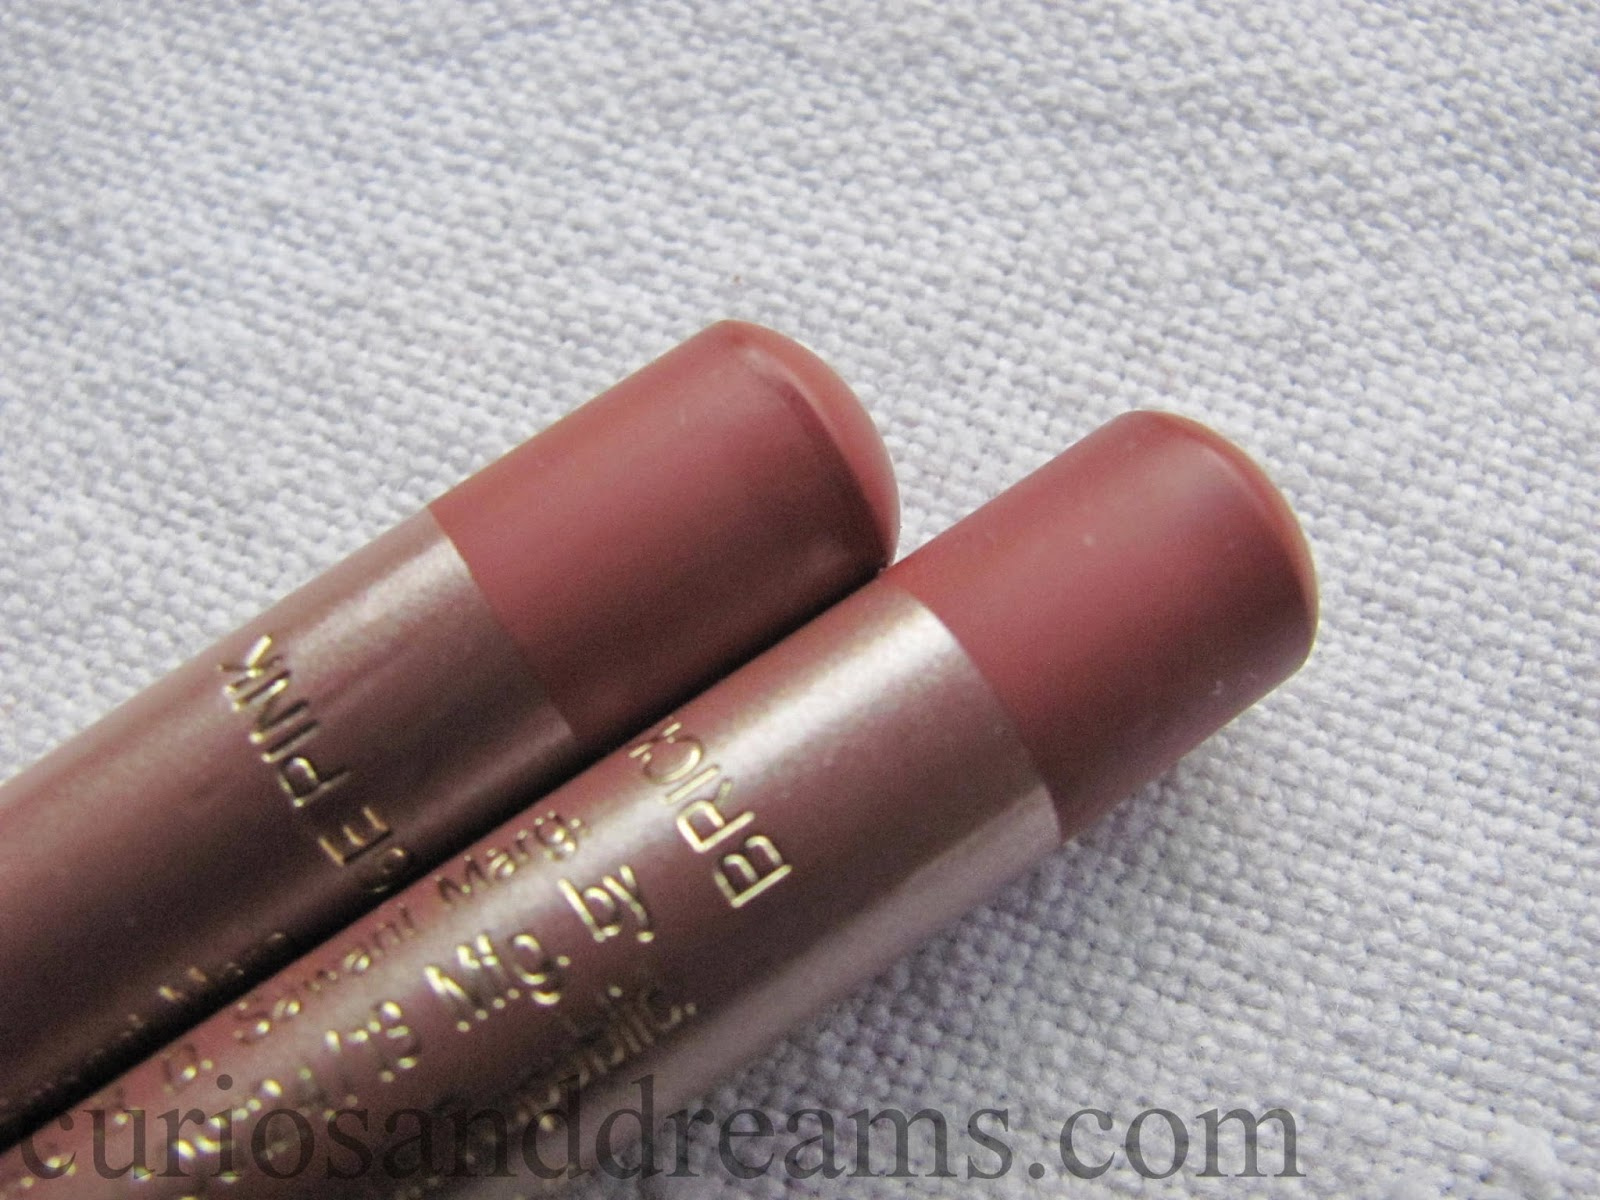 Lakme 9 to 5 Lip Liner Beige Pink review, Lakme 9 to 5 Lip Liner Beige Pink swatch